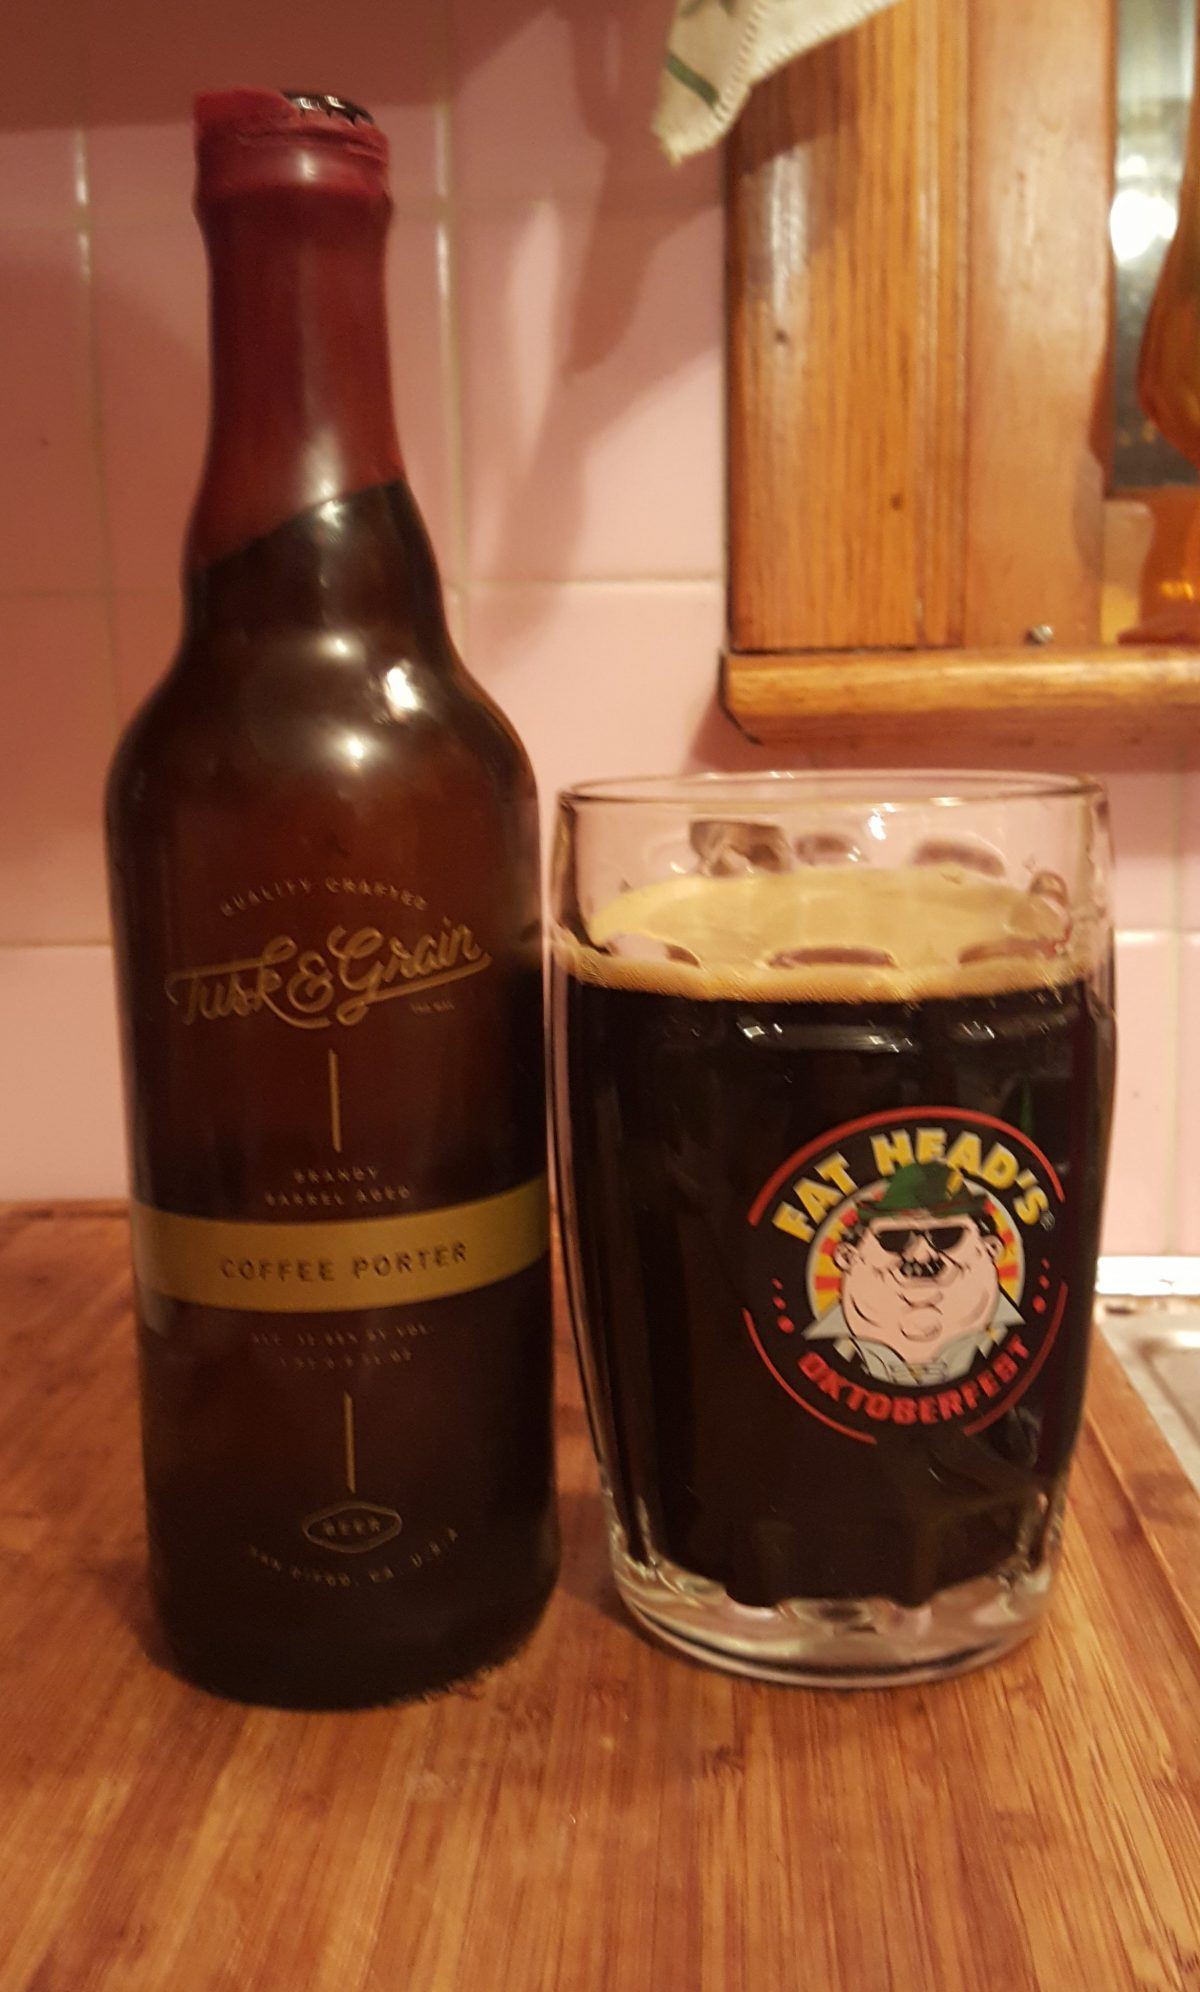 Brandy Barrel-Aged Coffee Porter (Tusk & Grain)